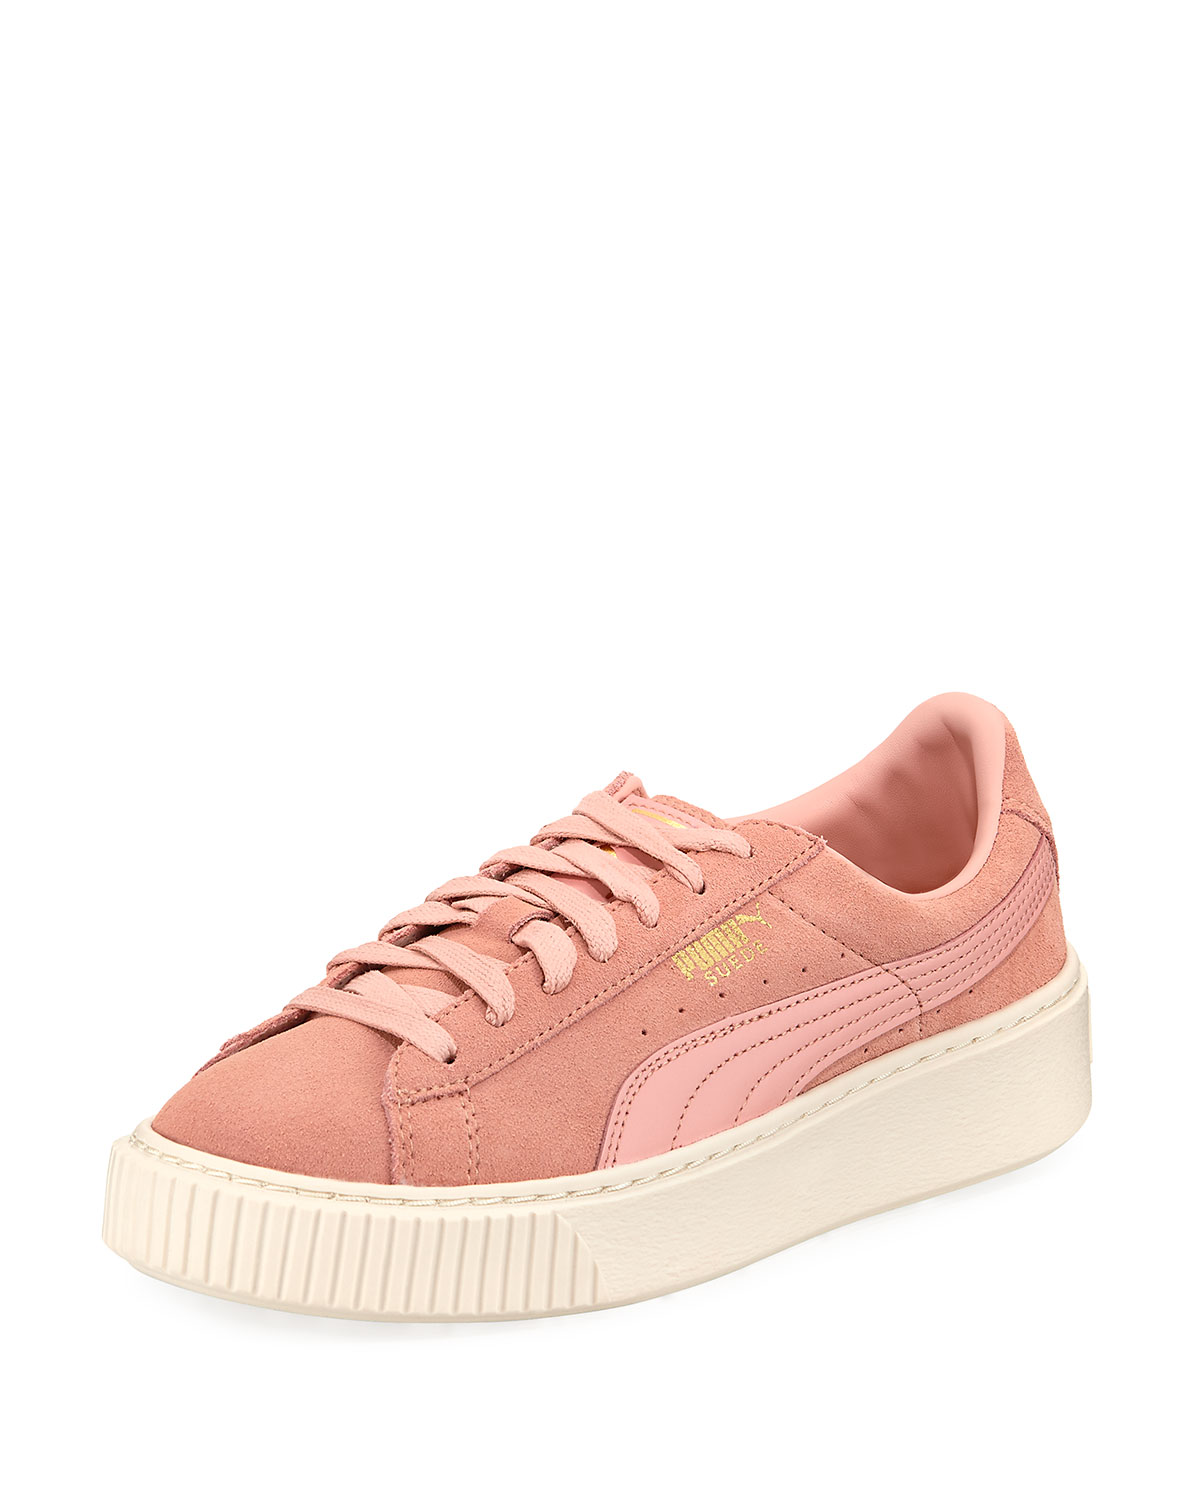 d20af4e5d165 Puma Suede Platform Lace-Up Sneakers